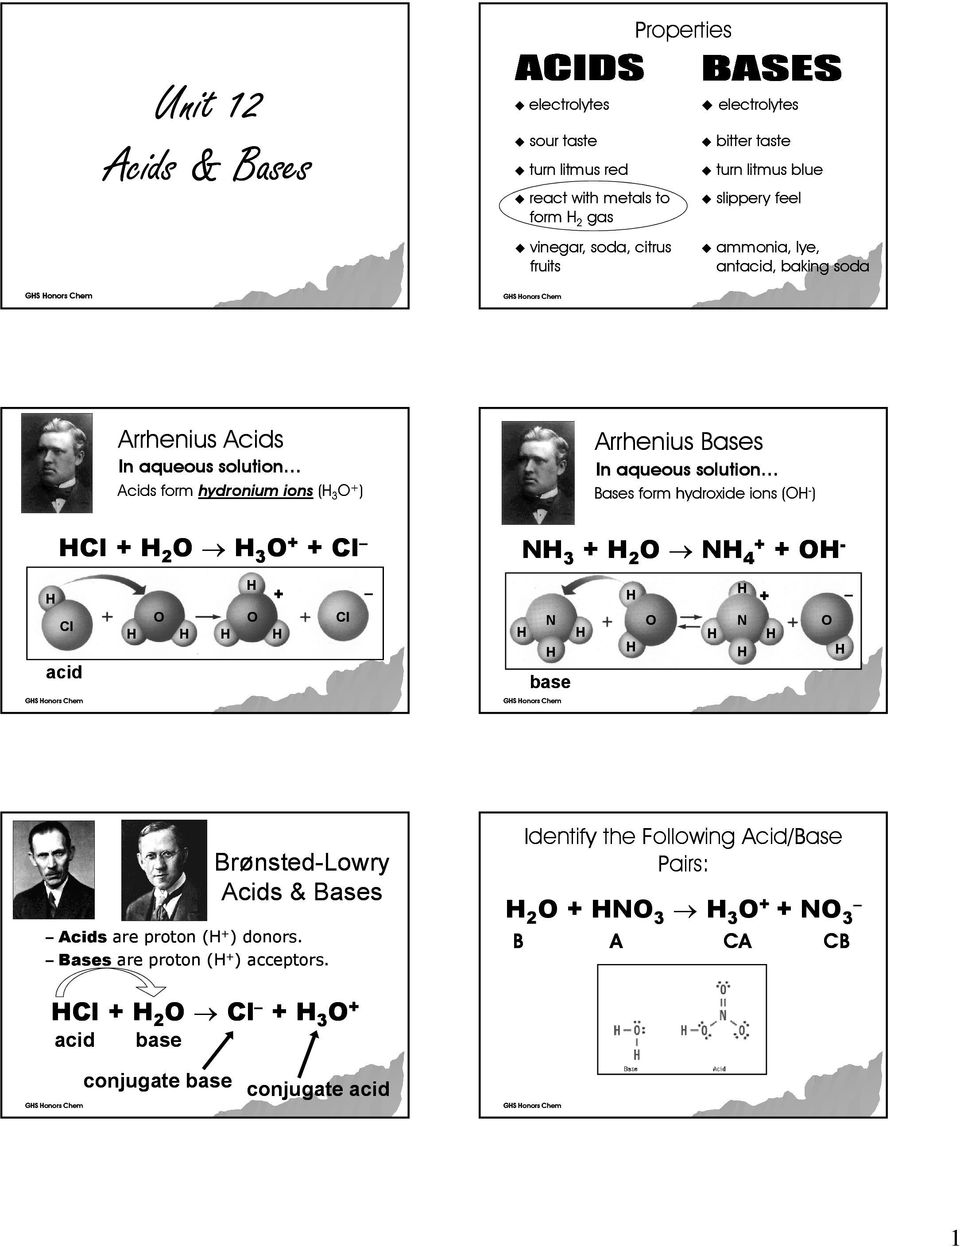 3 + Cl Arrhenius Bases In aqueous solution Bases form hydroxide ions ( ) N 3 + 2 N 4+ + N base 3 2 4 N + BrønstedLowry Acids & Bases Acids are proton ( + )